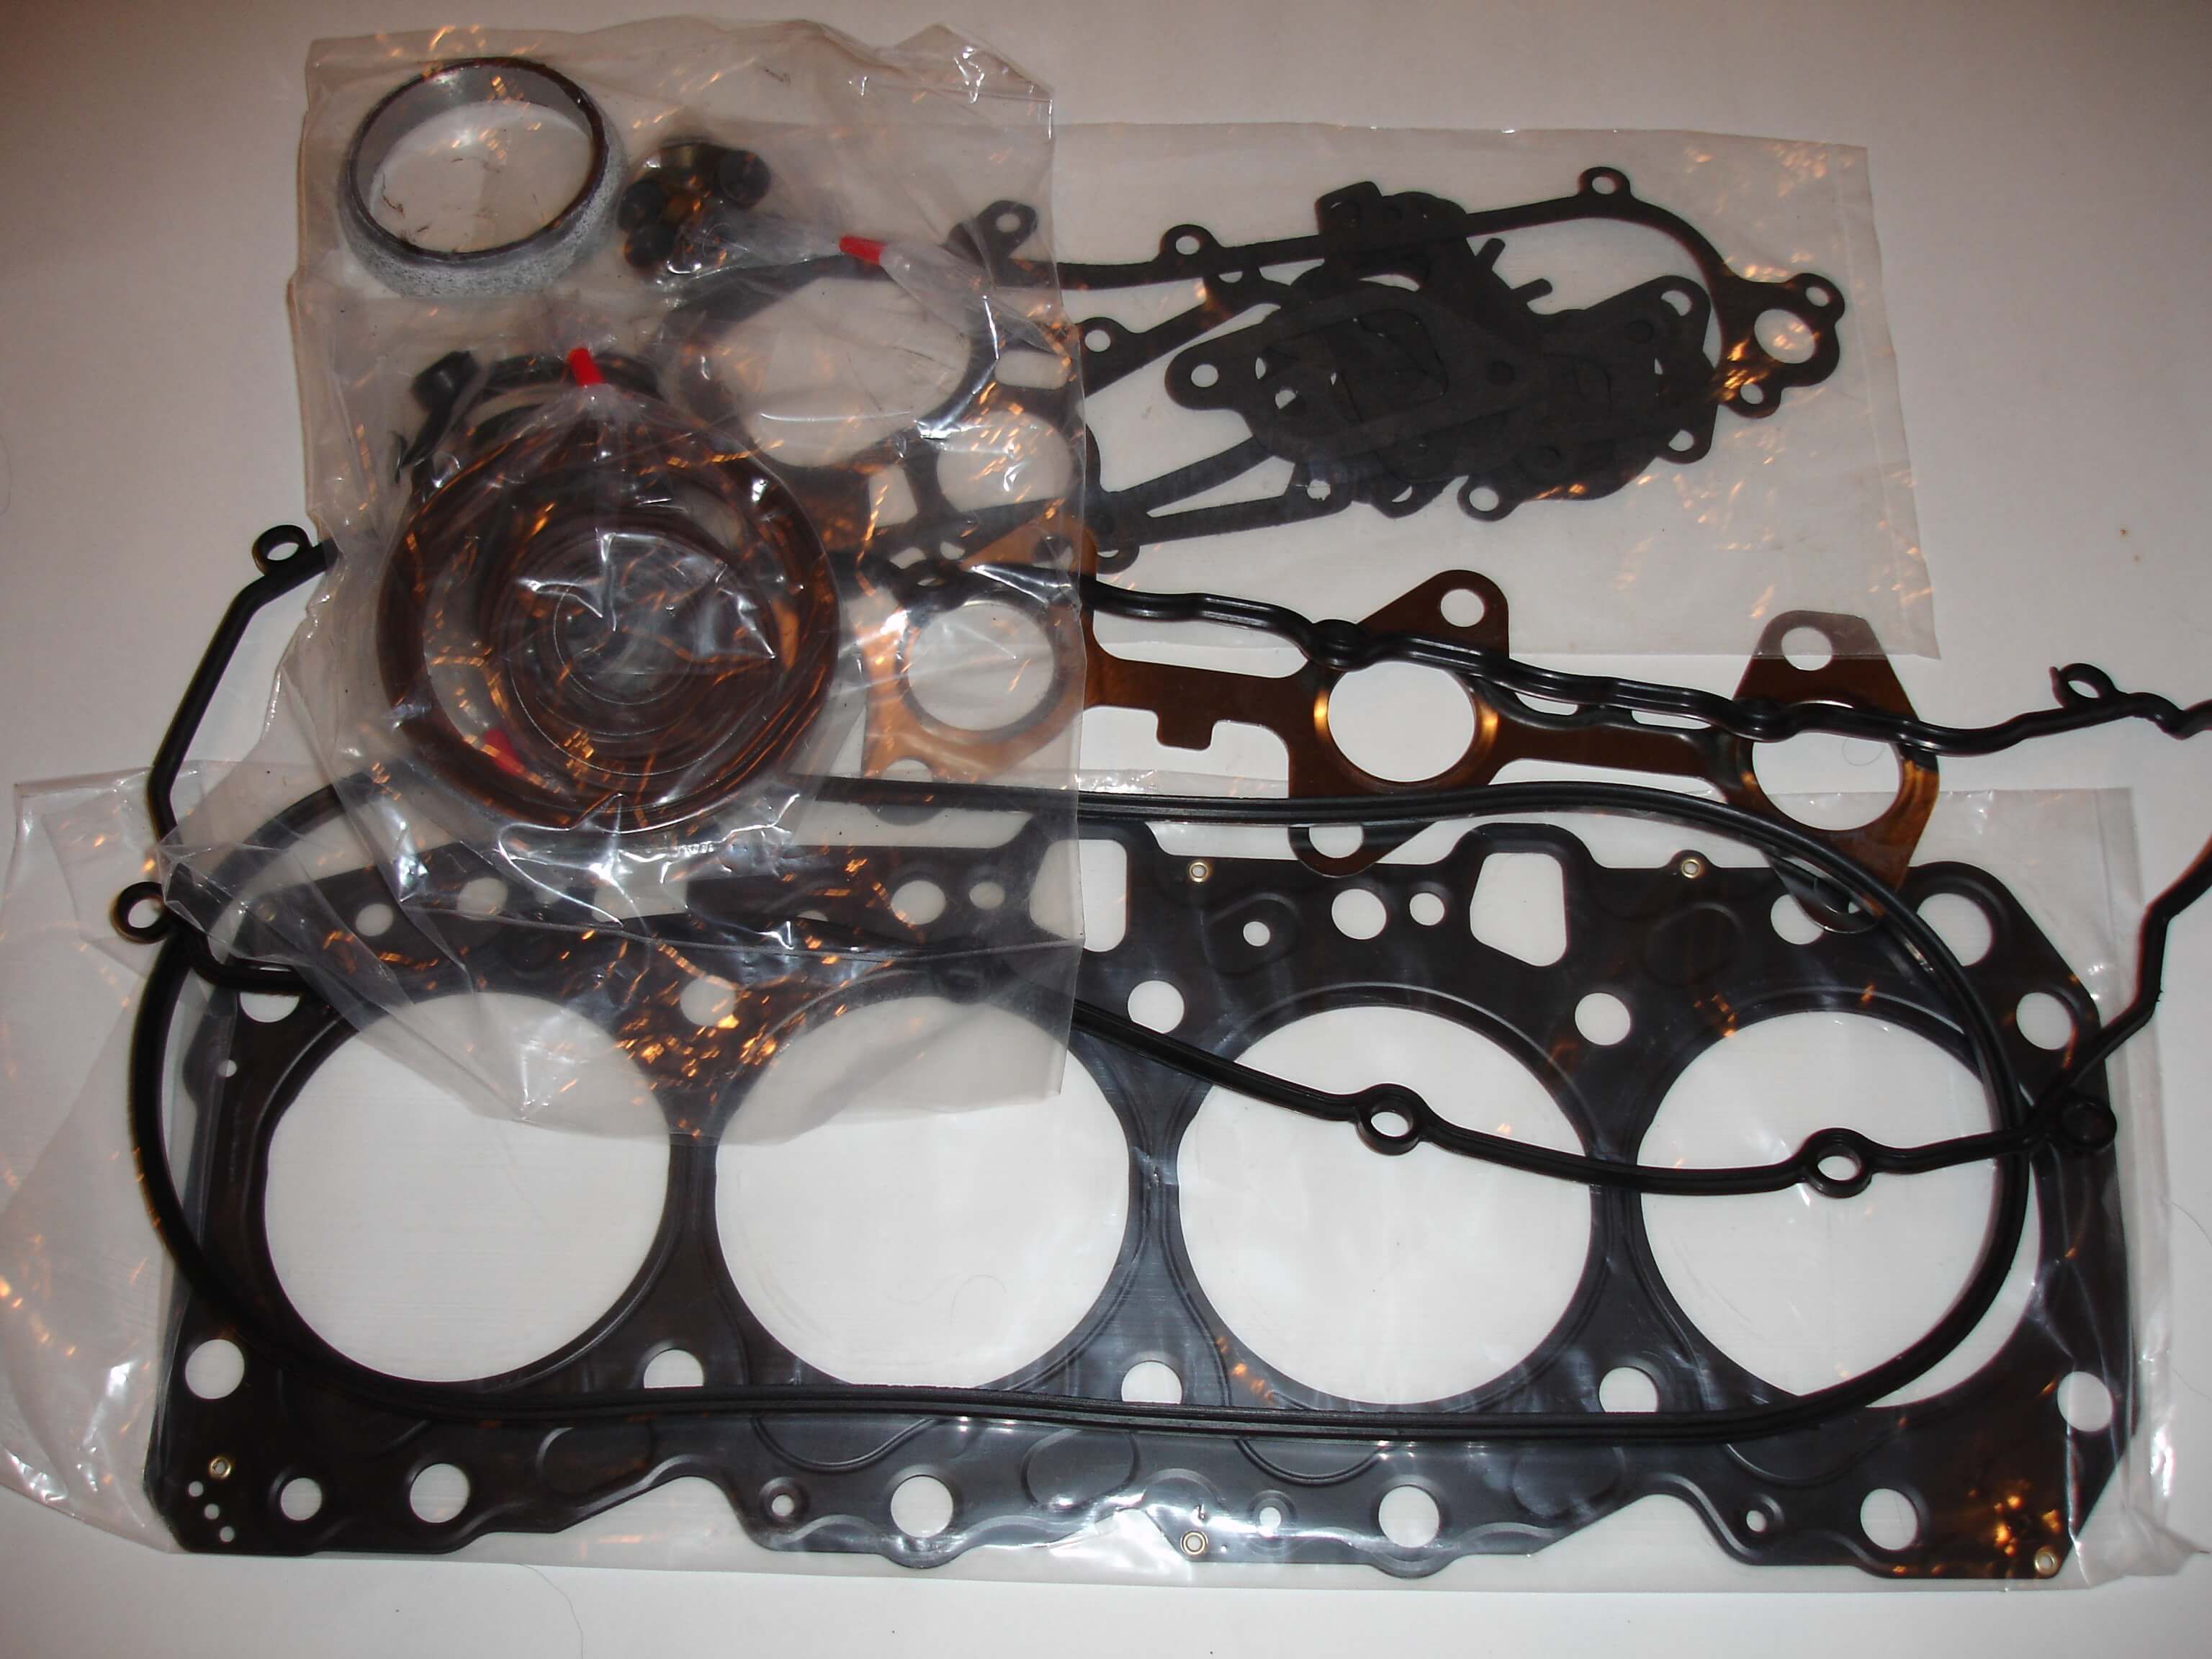 Toyota OEM Diesel 1KZ-TE Enginer Overhaul Gasket Kit 04111-67020 04111-67025